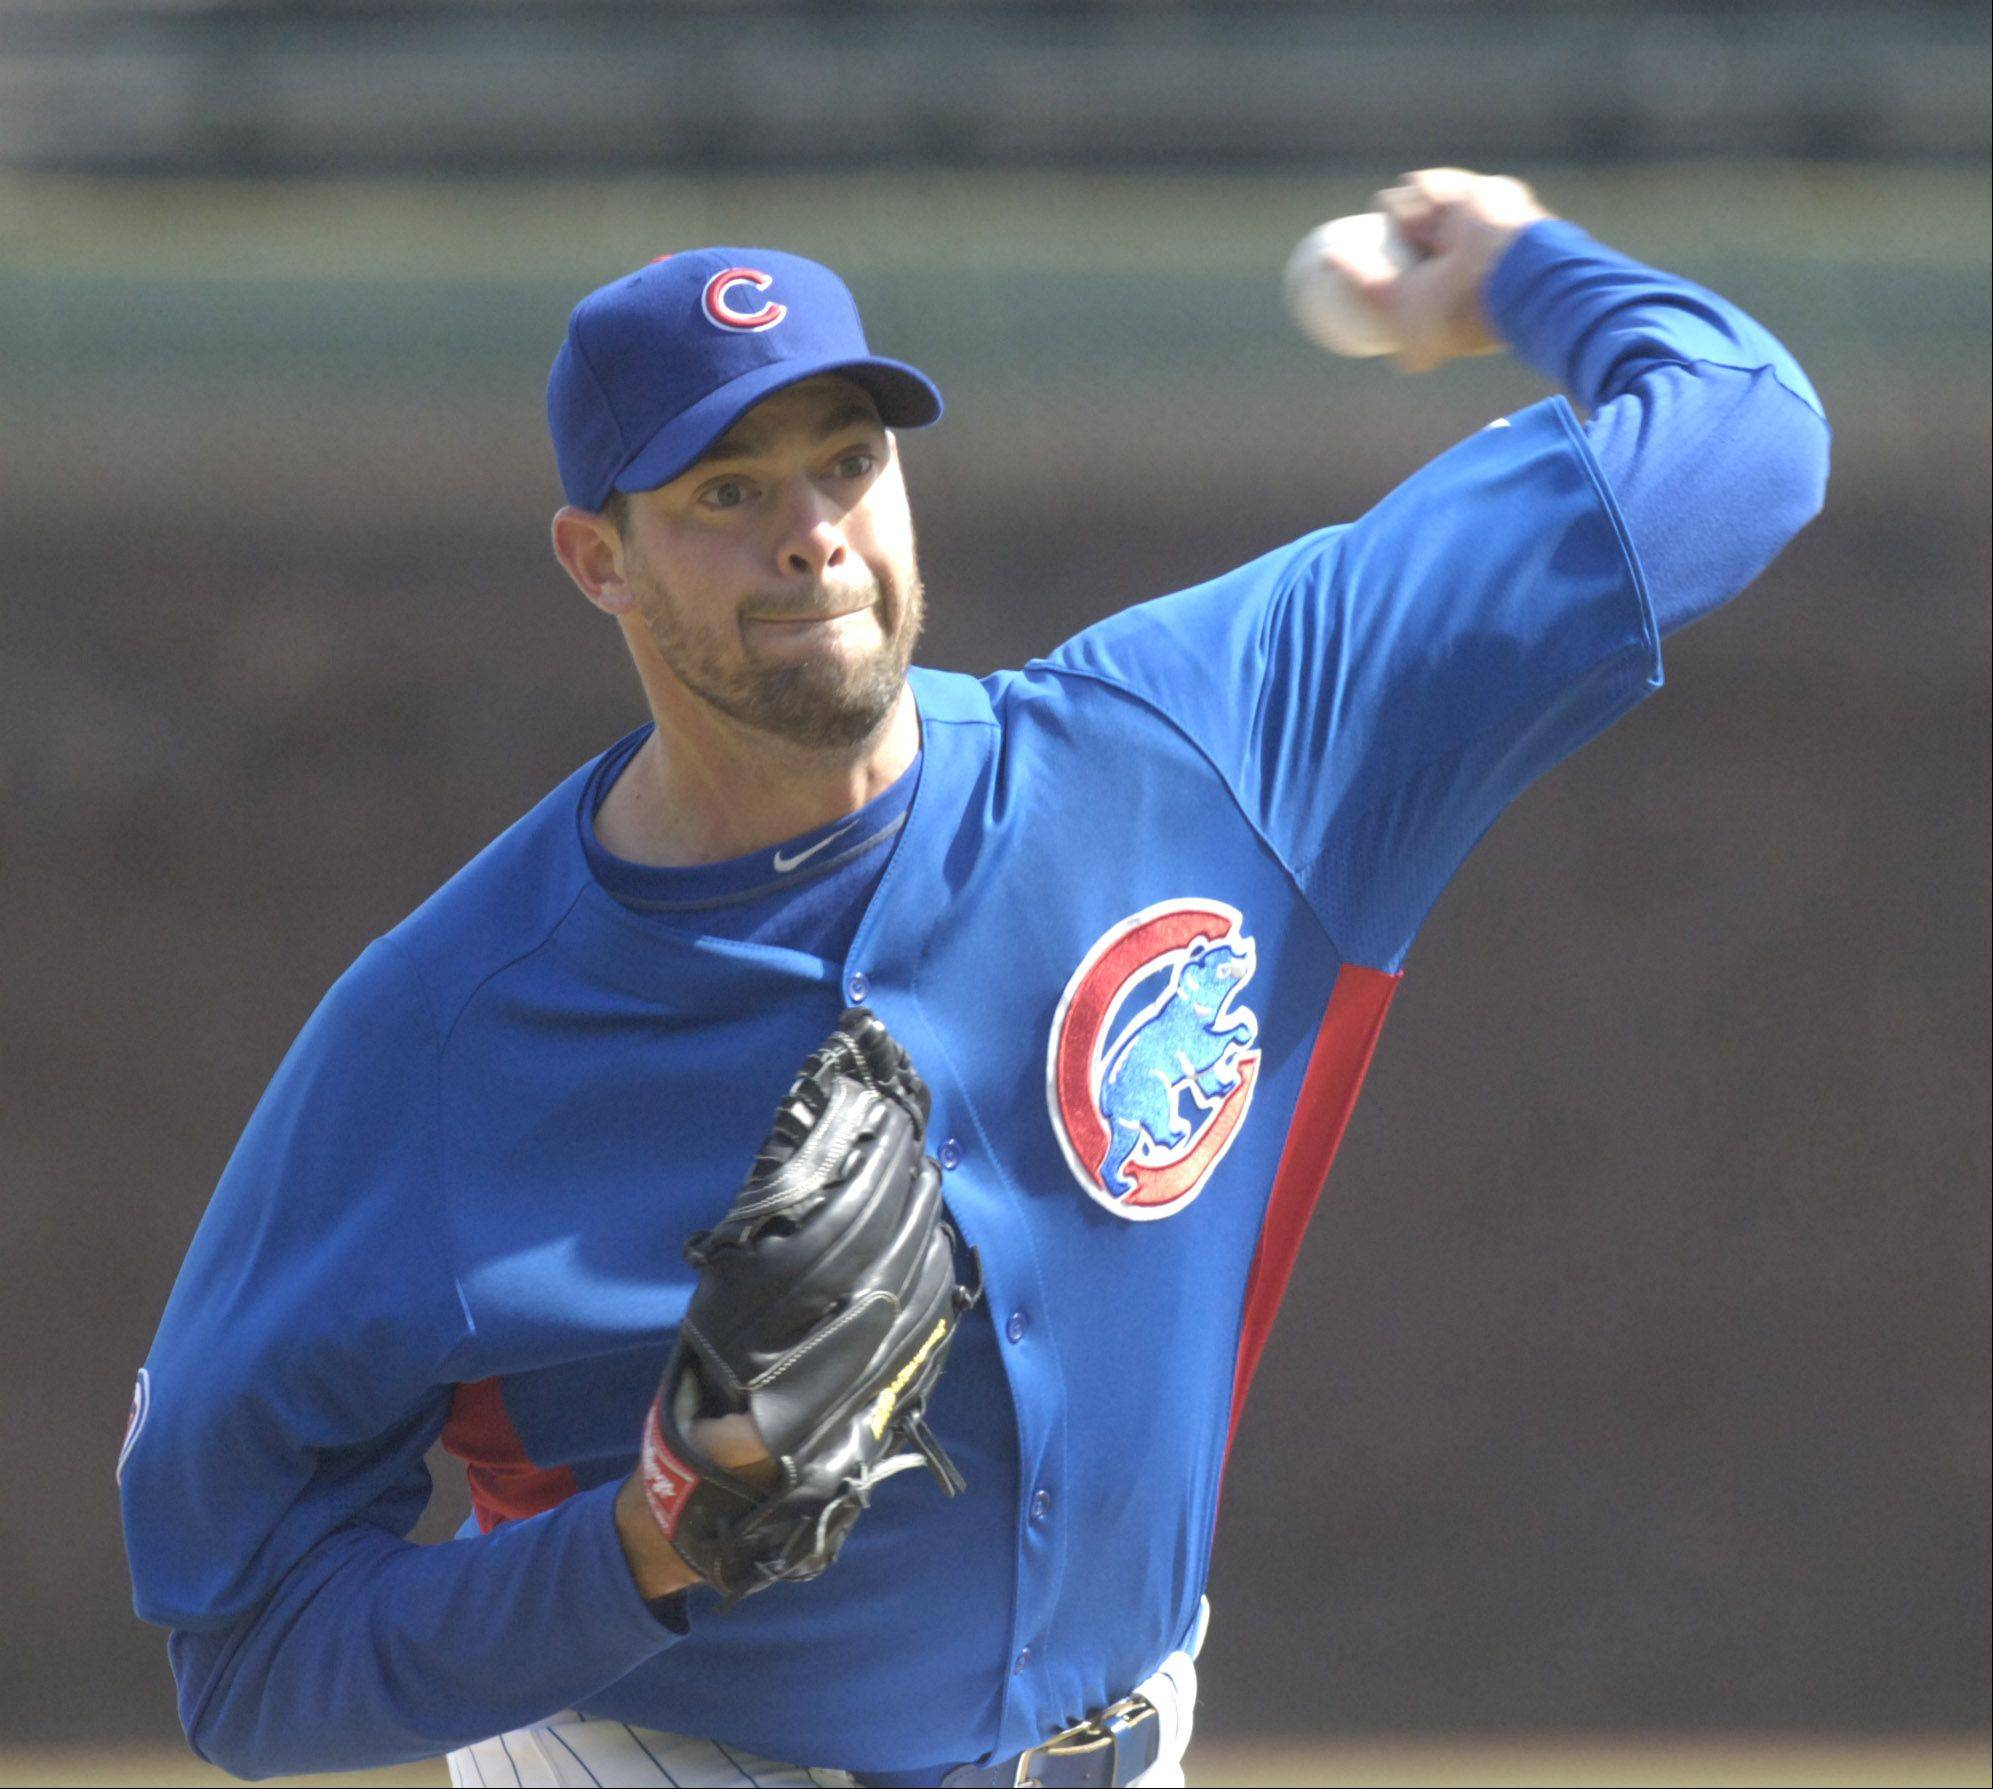 Although Cubs pitcher Sean Marshall is considered one of the best left handed relievers in baseball, he also is at his peak value for the Cubs right now as they try to rebuild with trades.